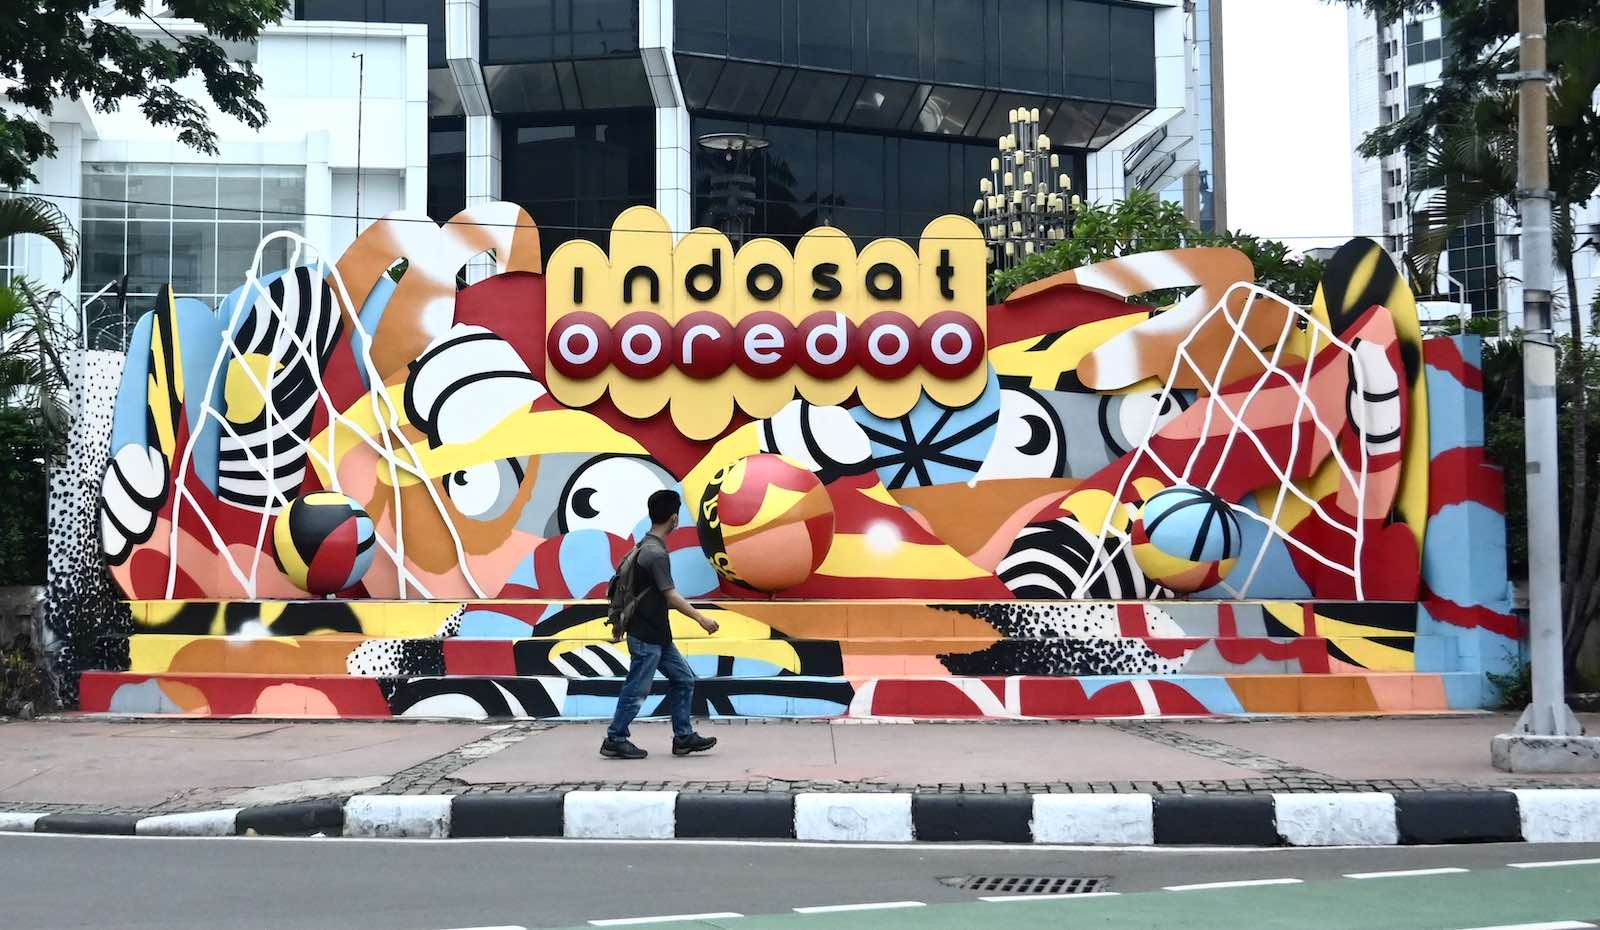 A billboard in Jakarta for Indosat Ooredoo, one of Indonesia's largest telecoms providers (Goh Chai Hin/AFP via Getty Images)